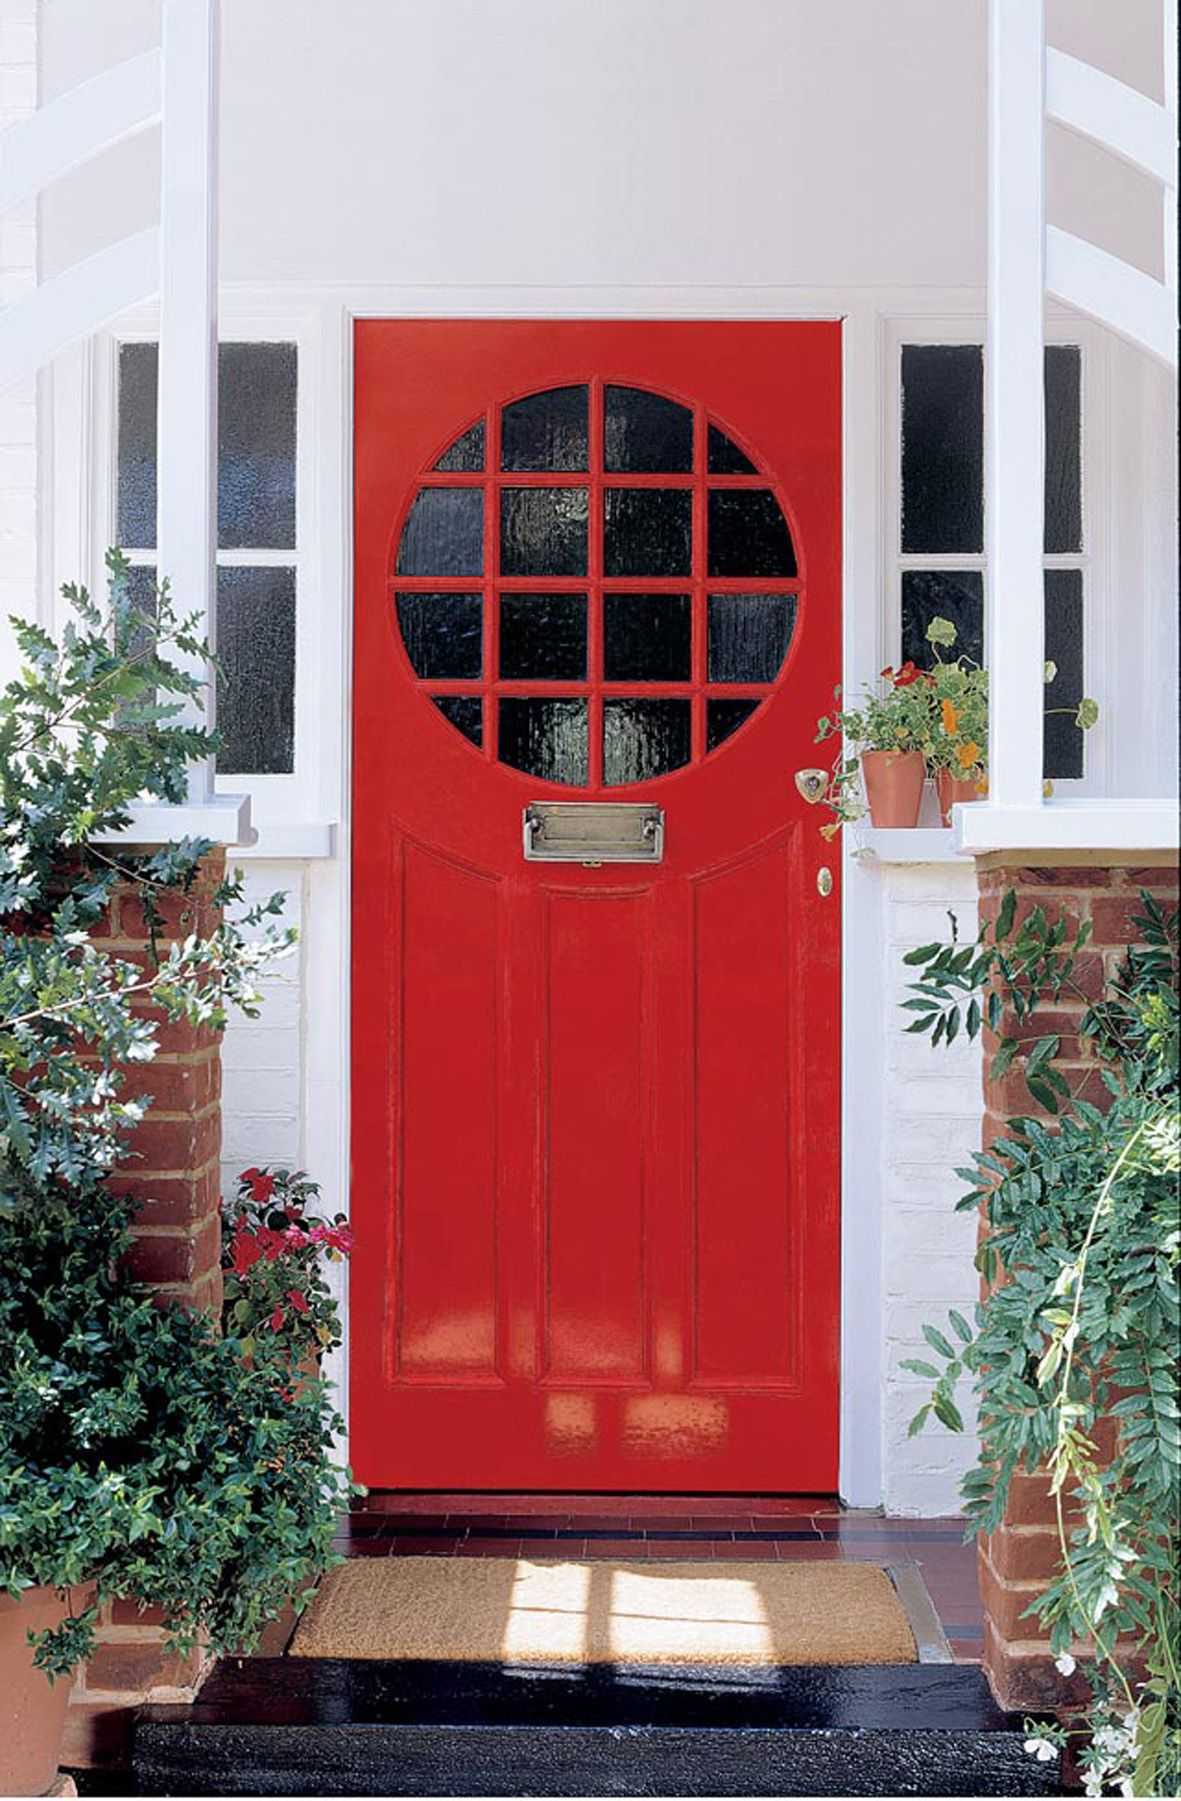 Crown Paints Ireland - Exterior Gloss in Pillar Box Red - Nice ...